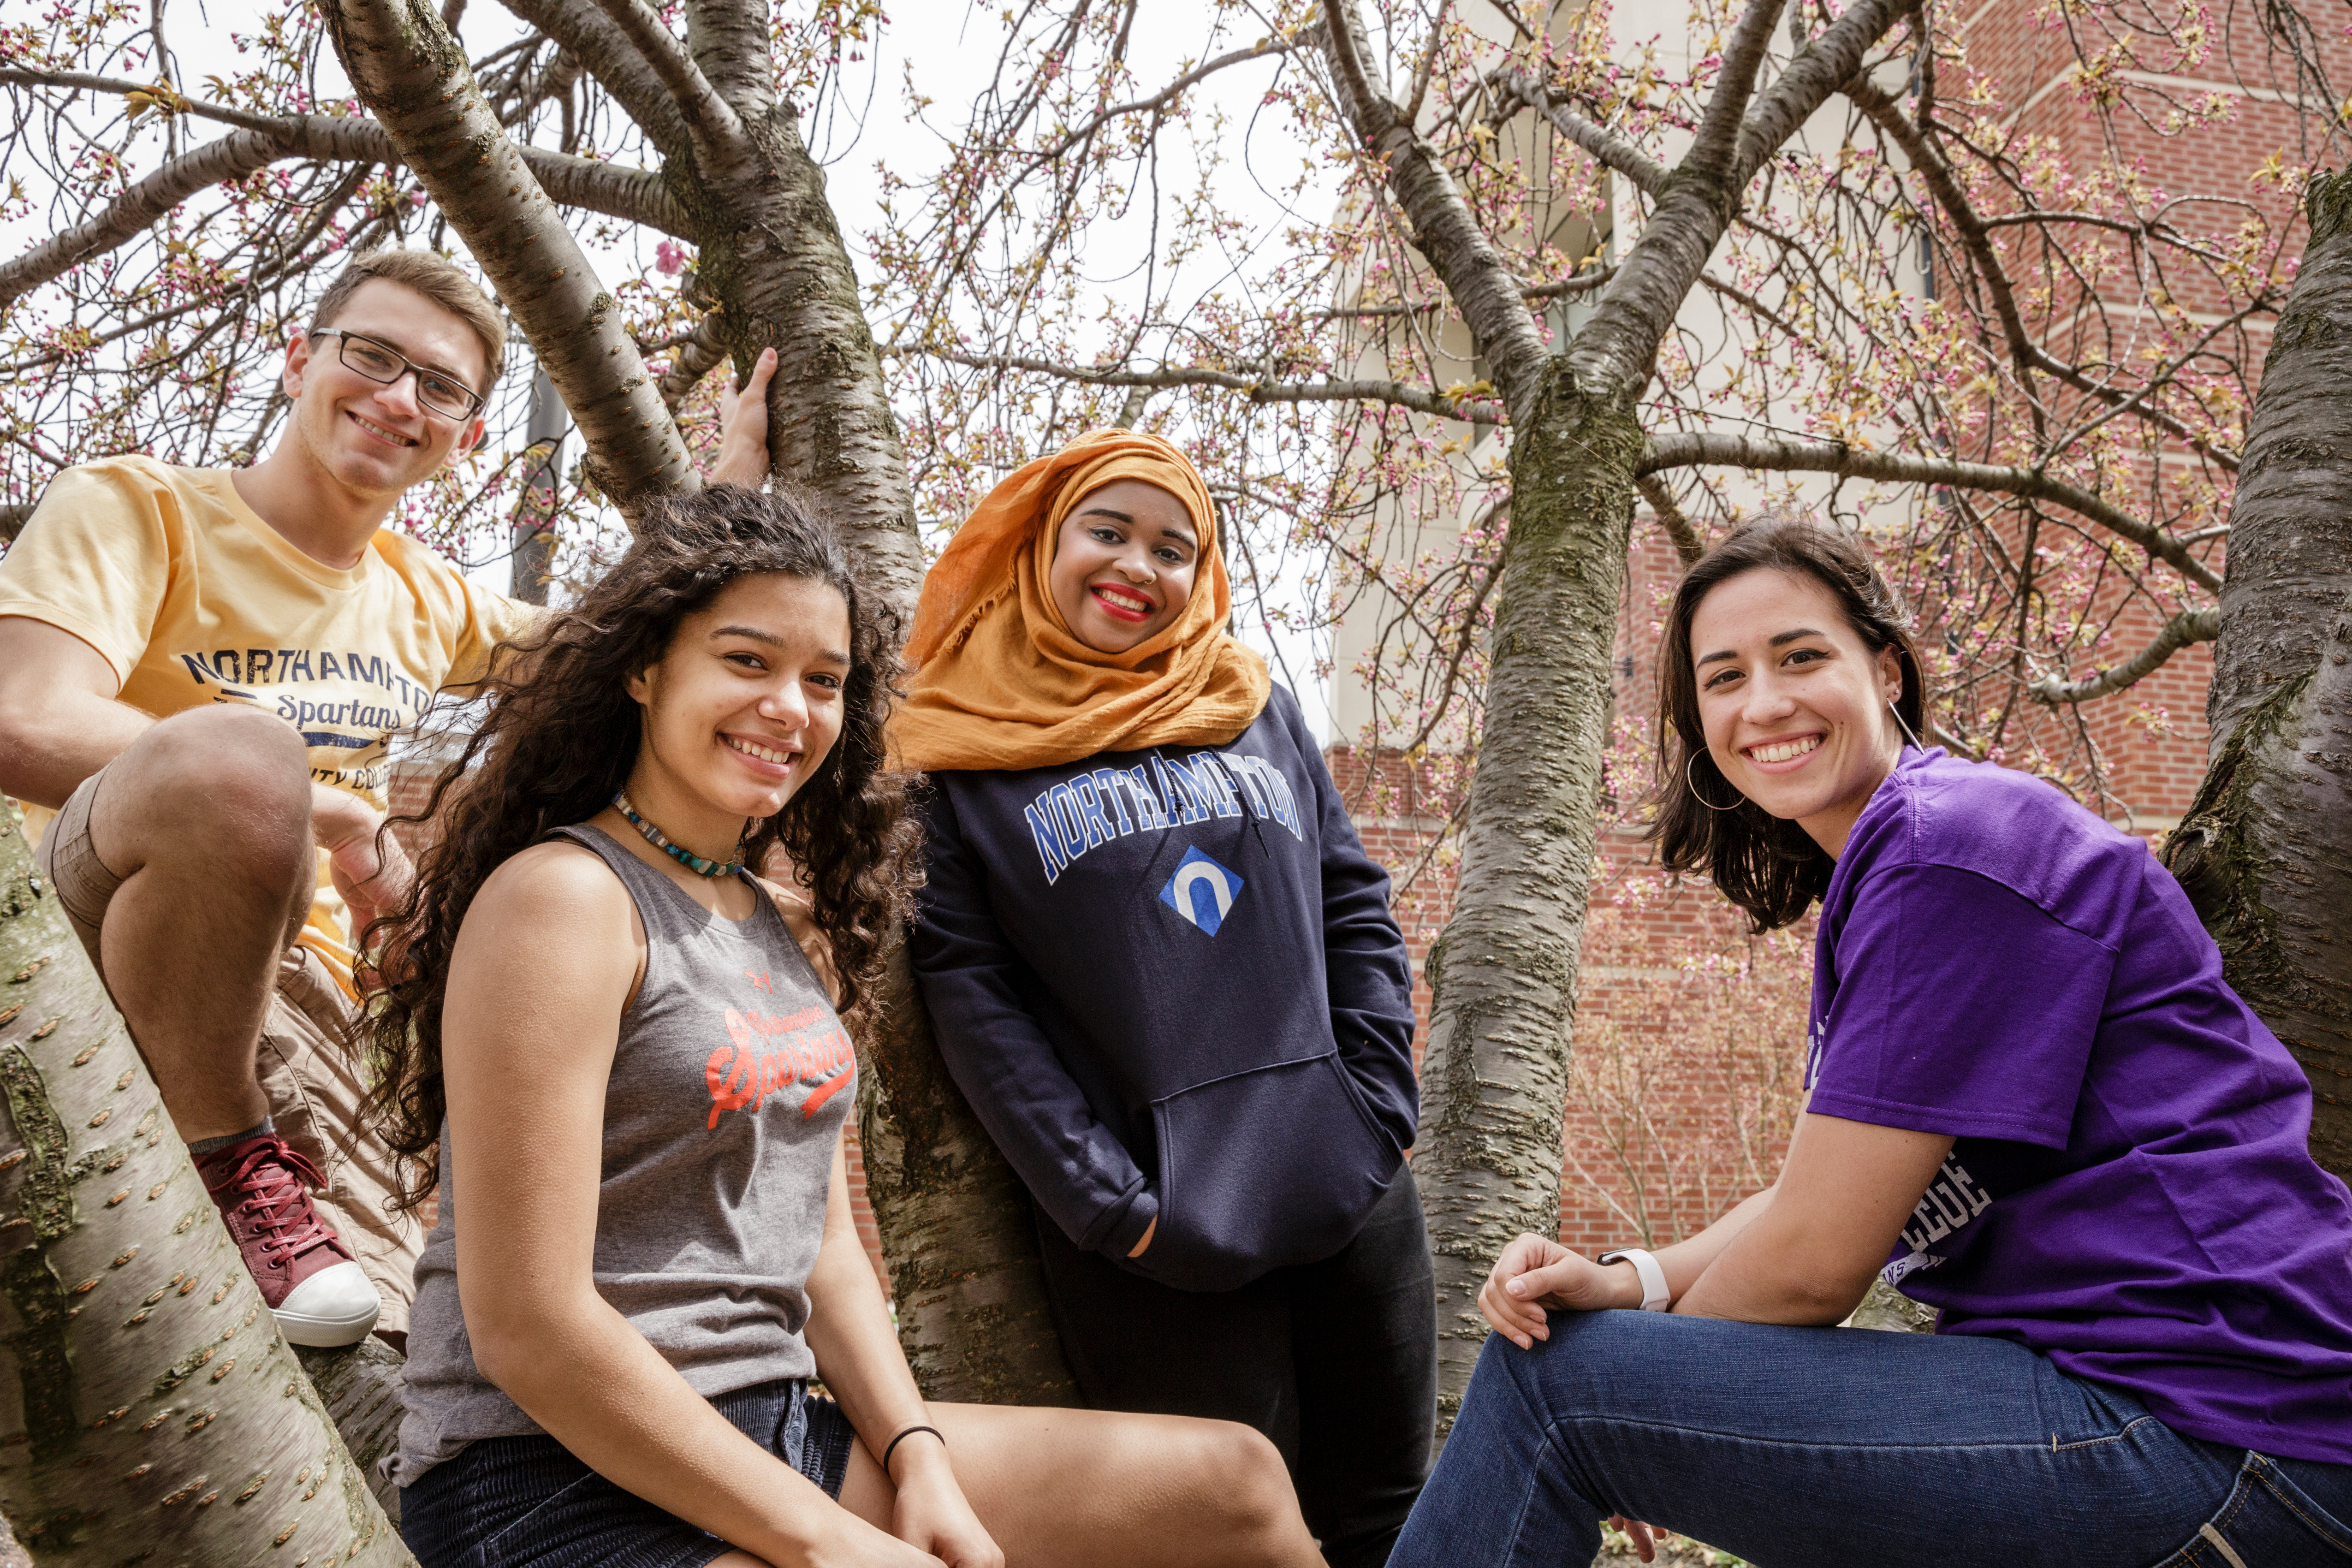 NCC students smiling in tree